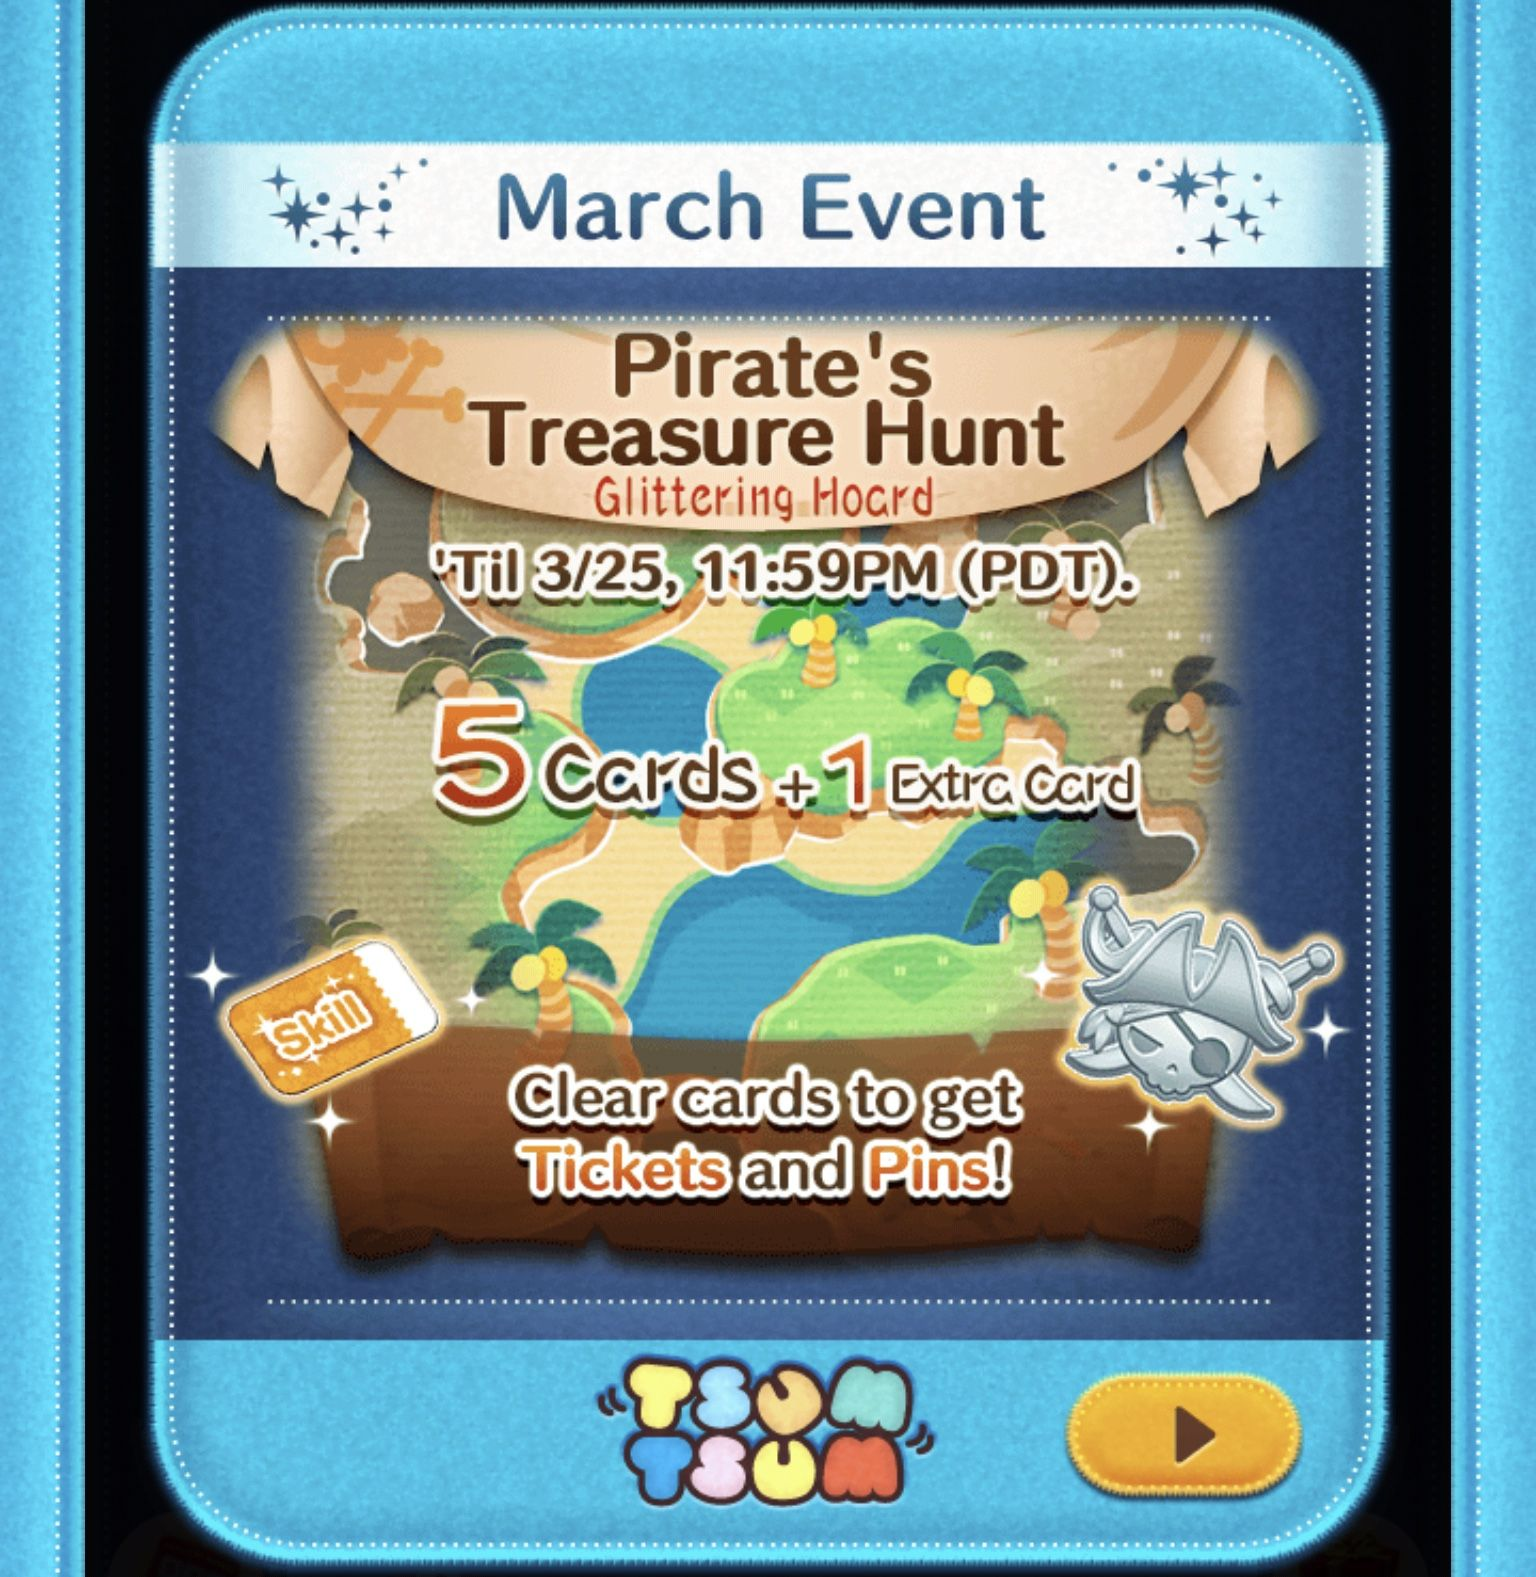 tsum tsum pirate treasure hunt help pointy hair rosy cheeked burst yellow time bubble tips